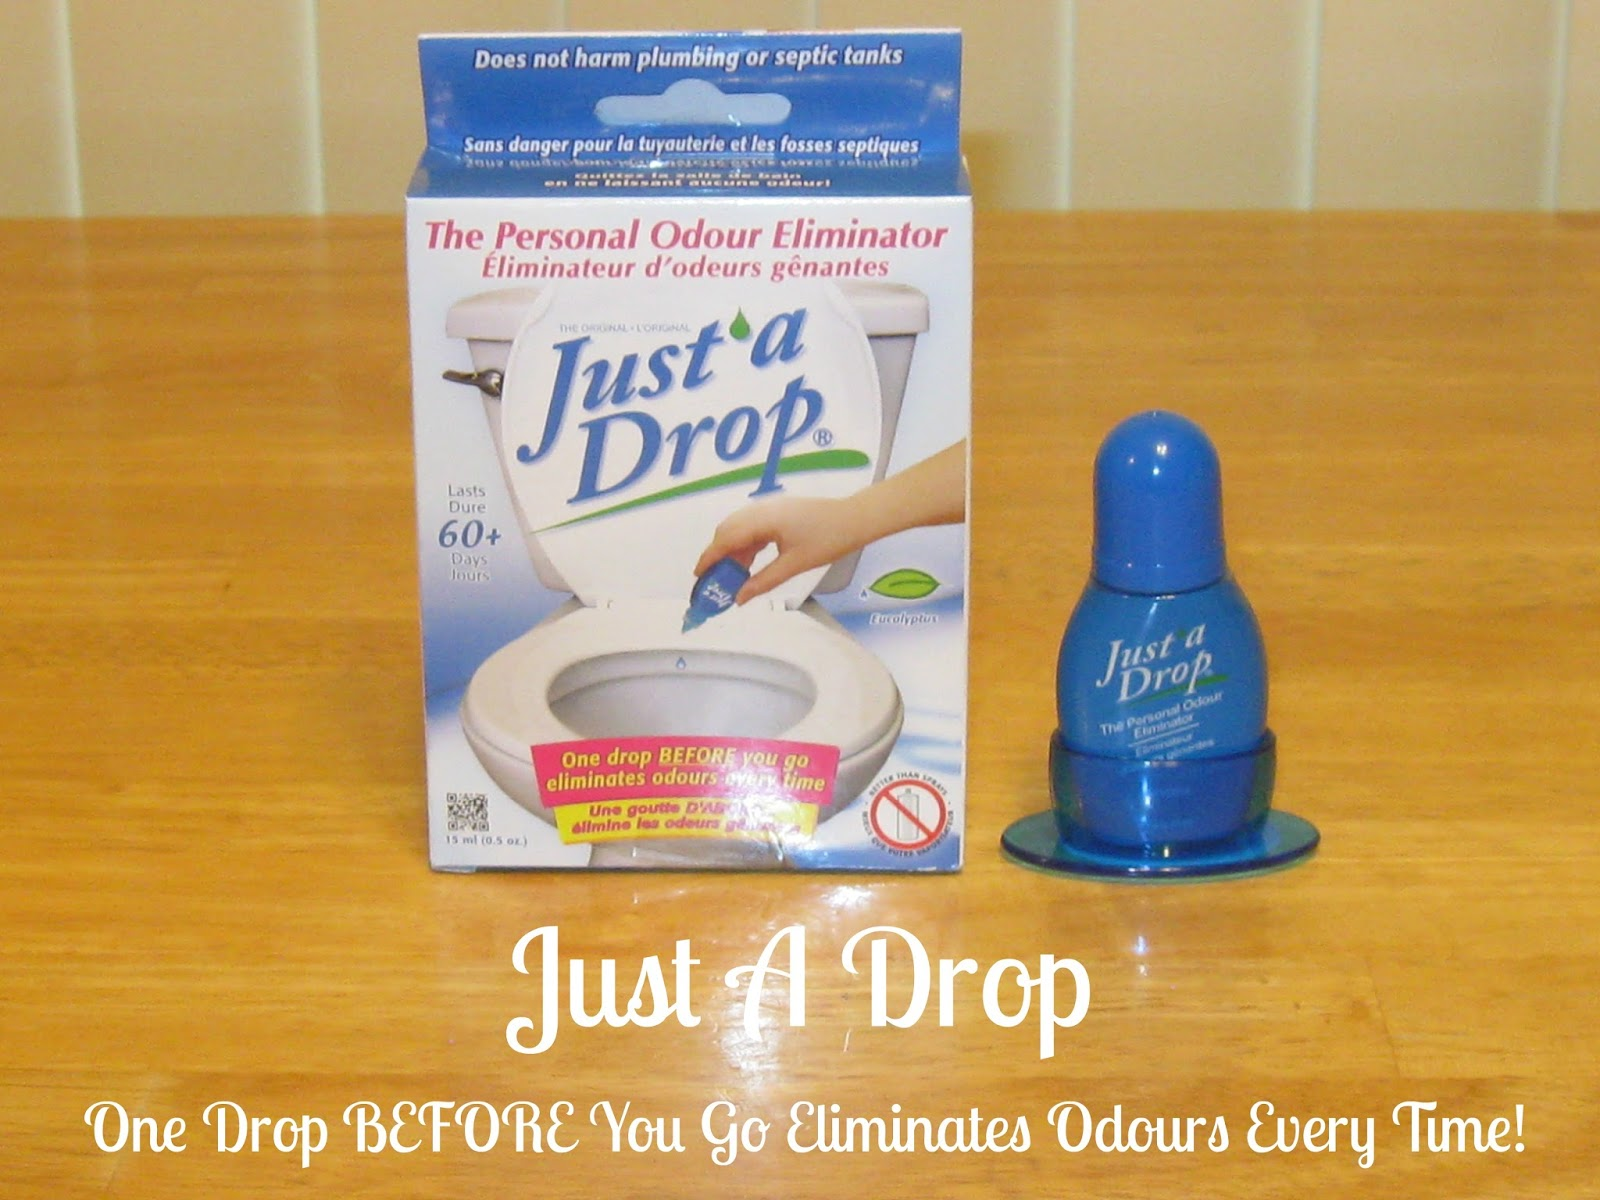 Everybody  39 s always looking for air fresheners  but what about a personal bathroom odor eliminator  Sometimes  when you or a family member use the bathroom. Just A Drop Odours Eliminator Review   Quick Tattletails